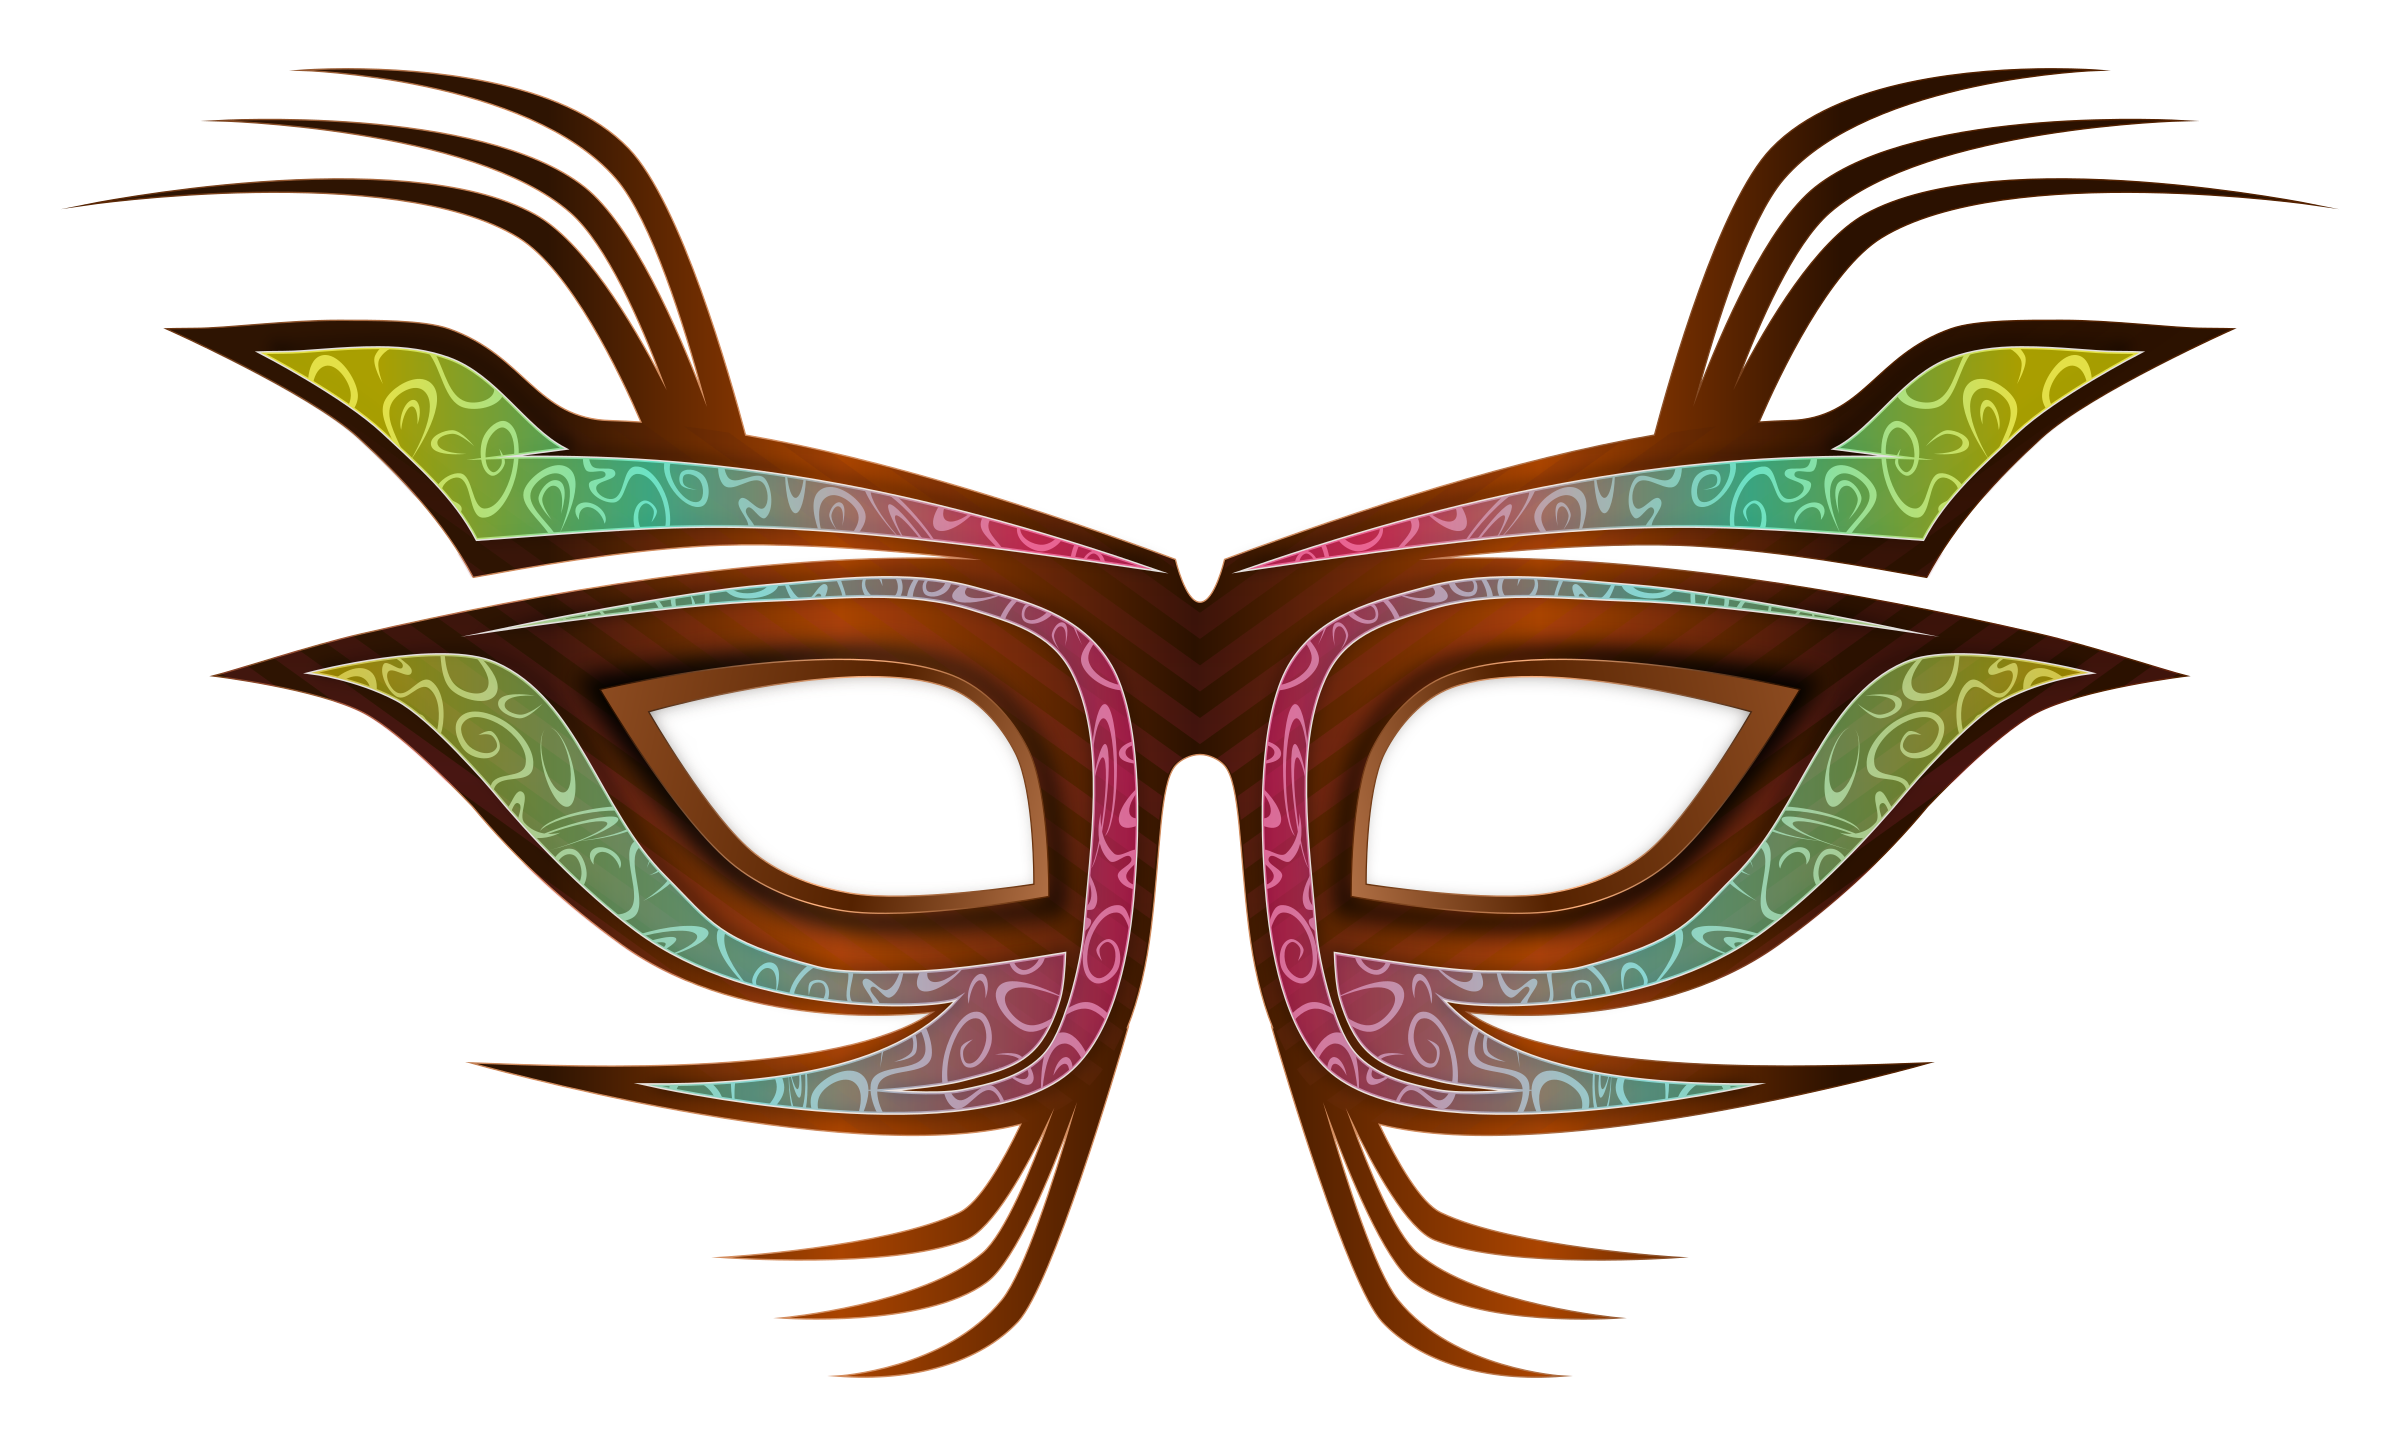 clipart royalty free library Pin by amy on. Masquerade clipart masquerade invitation.